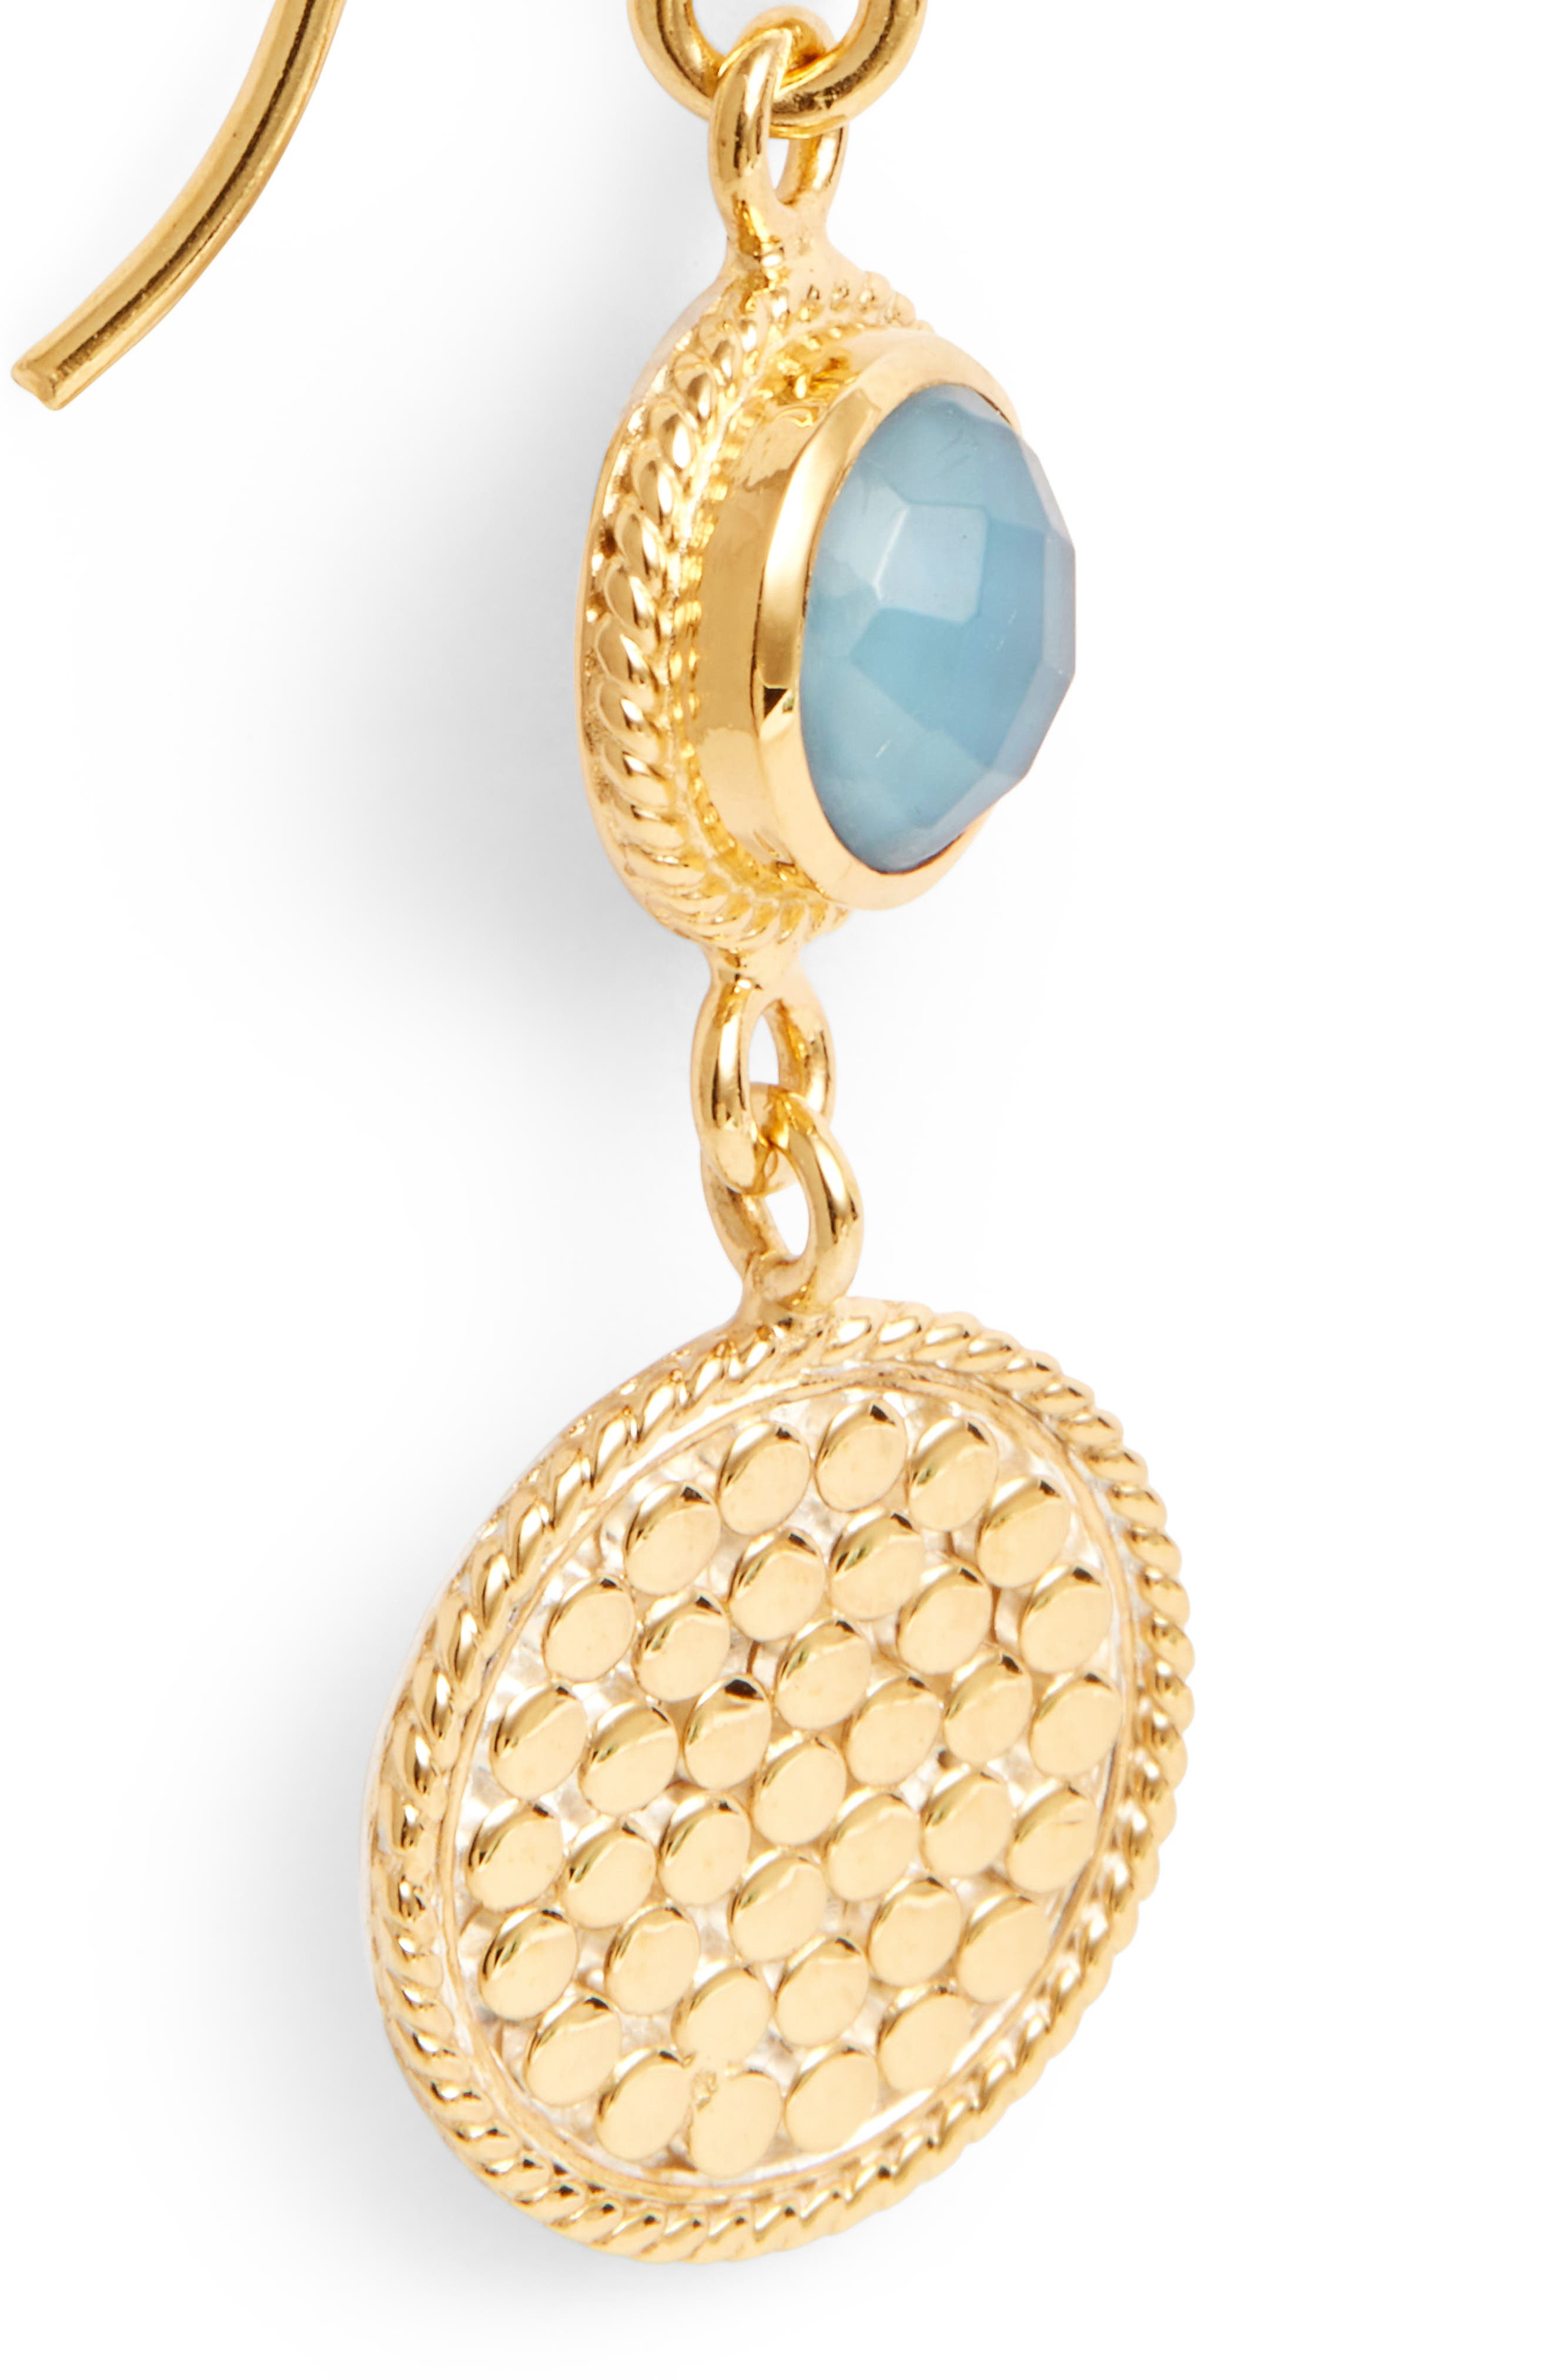 Semiprecious Stone Double Drop Earrings,                             Alternate thumbnail 5, color,                             Gold/ Blue Quartz